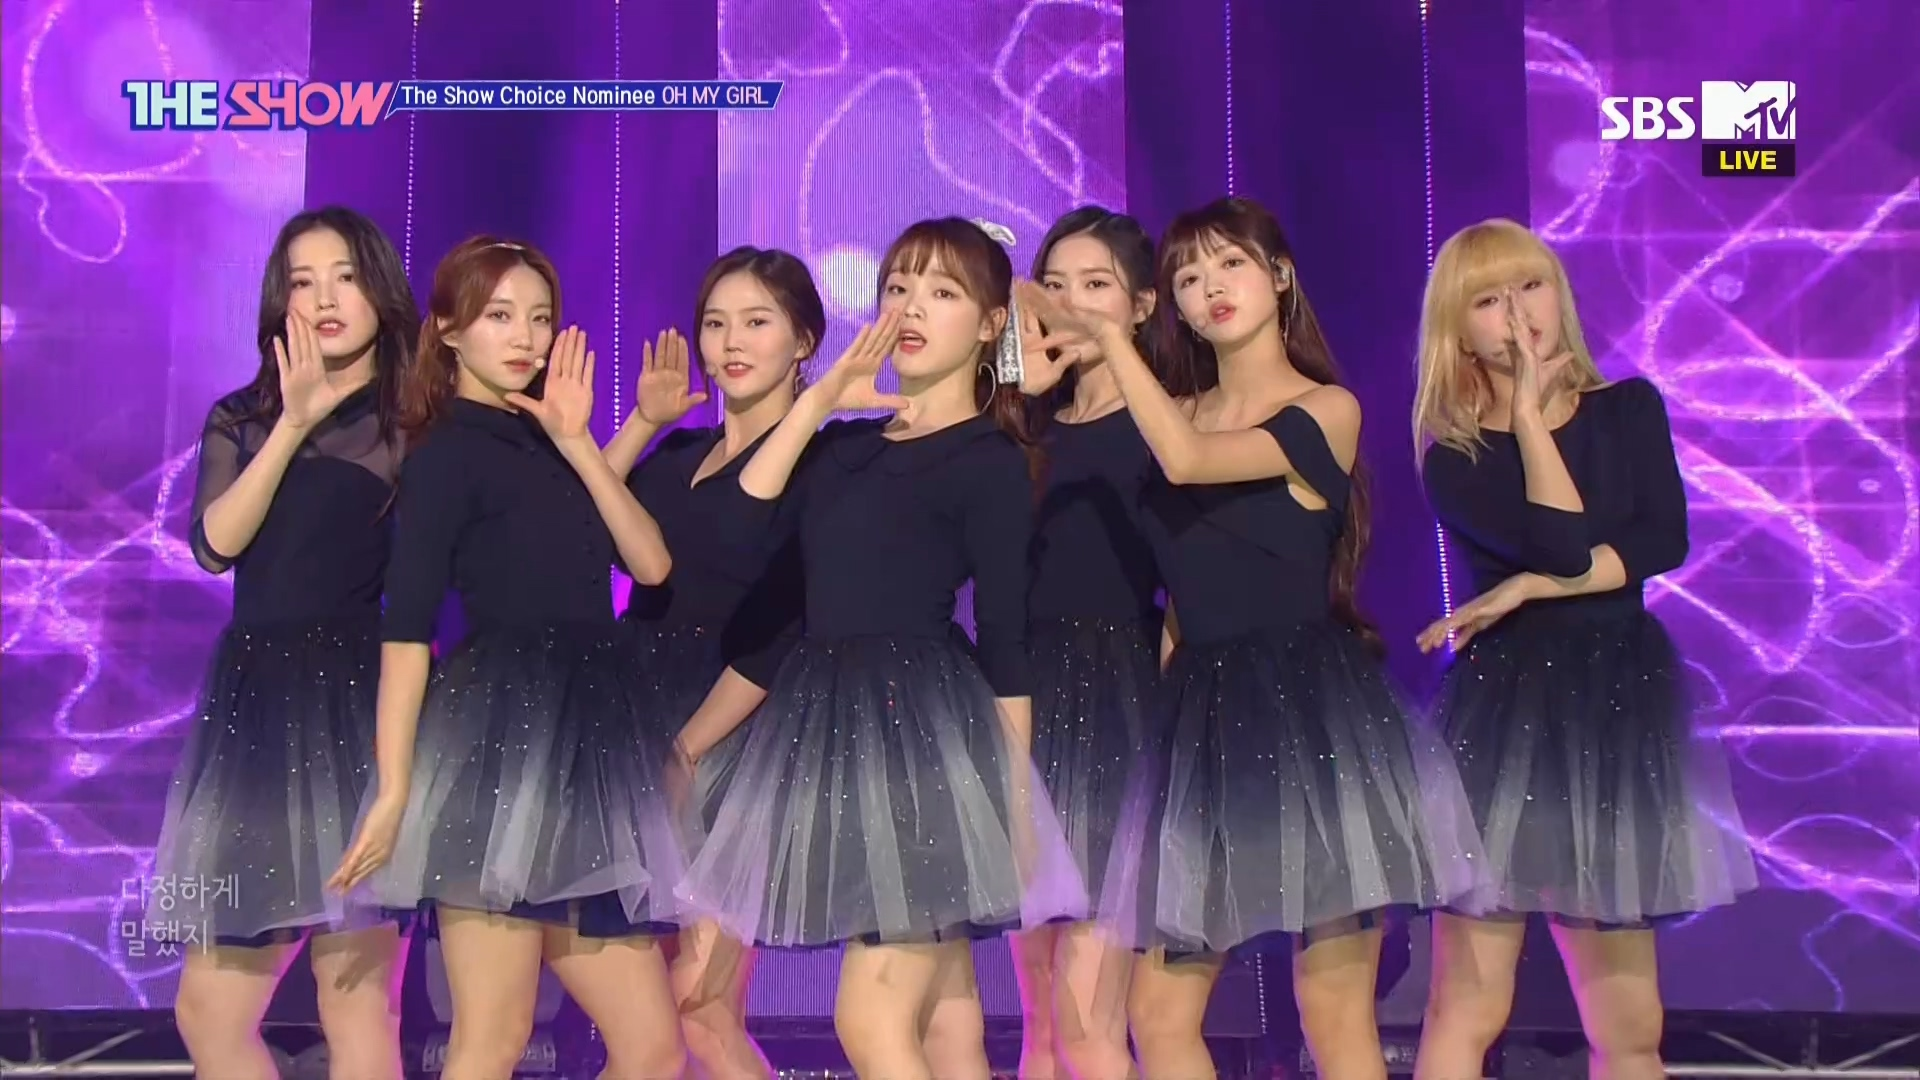 190514 SBS THE SHOW OH MY GIRL - Shower + The fifth season (SSFWL).ts_20190514_2.jpg